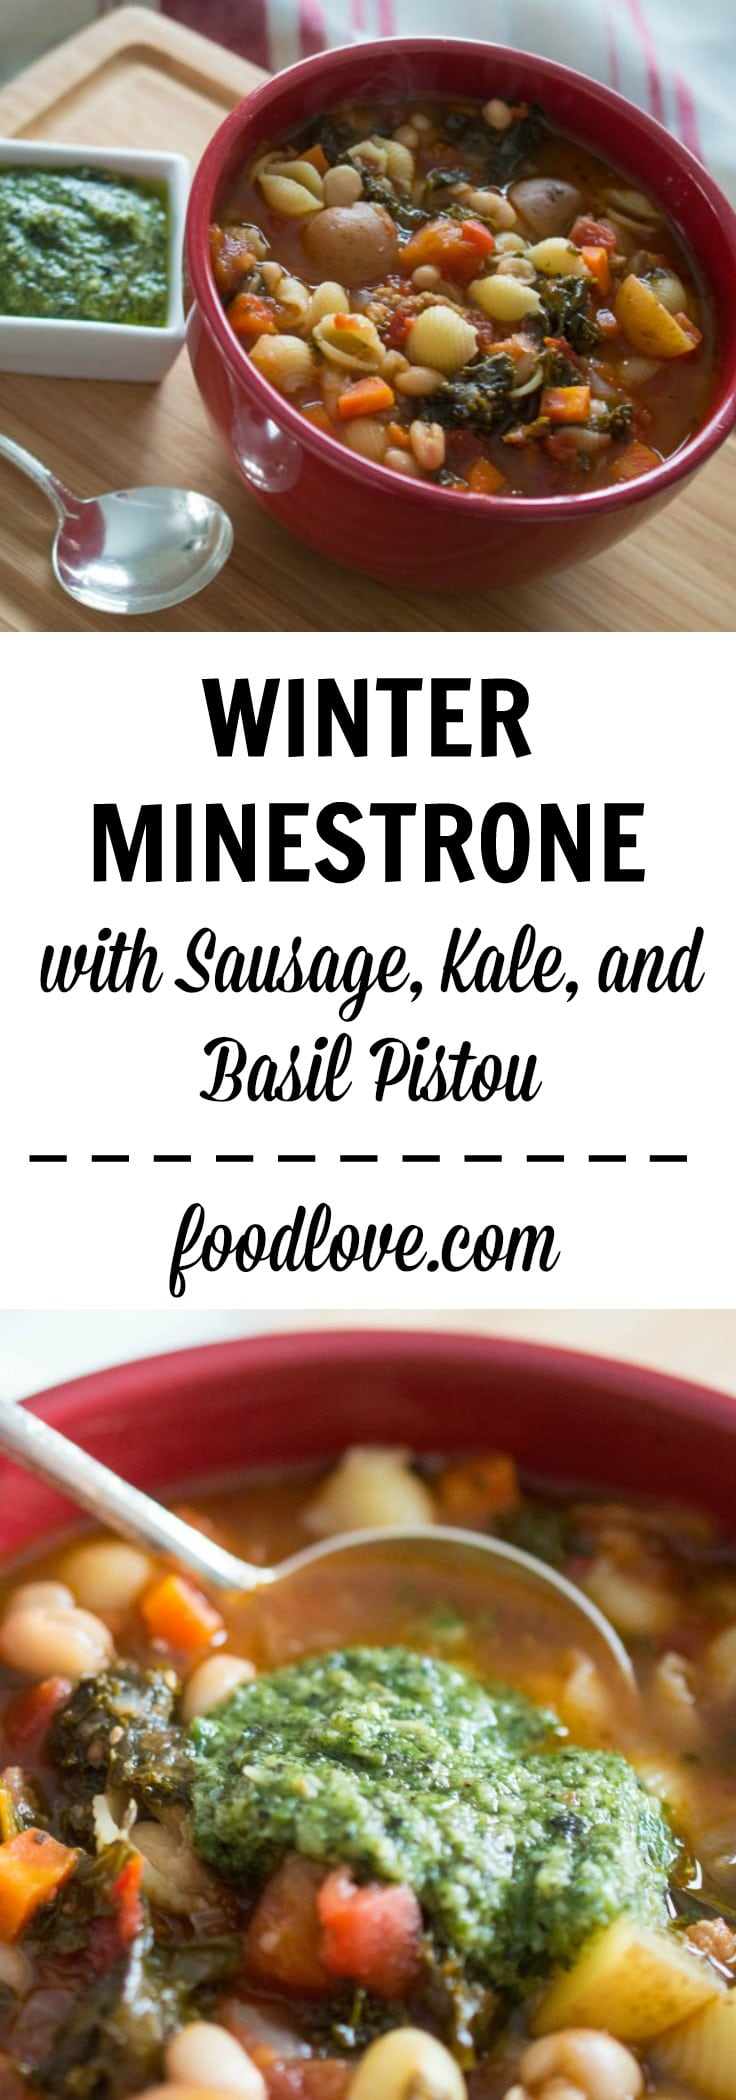 Winter Minestrone with Sausage, Kale, and Basil Pistou ...